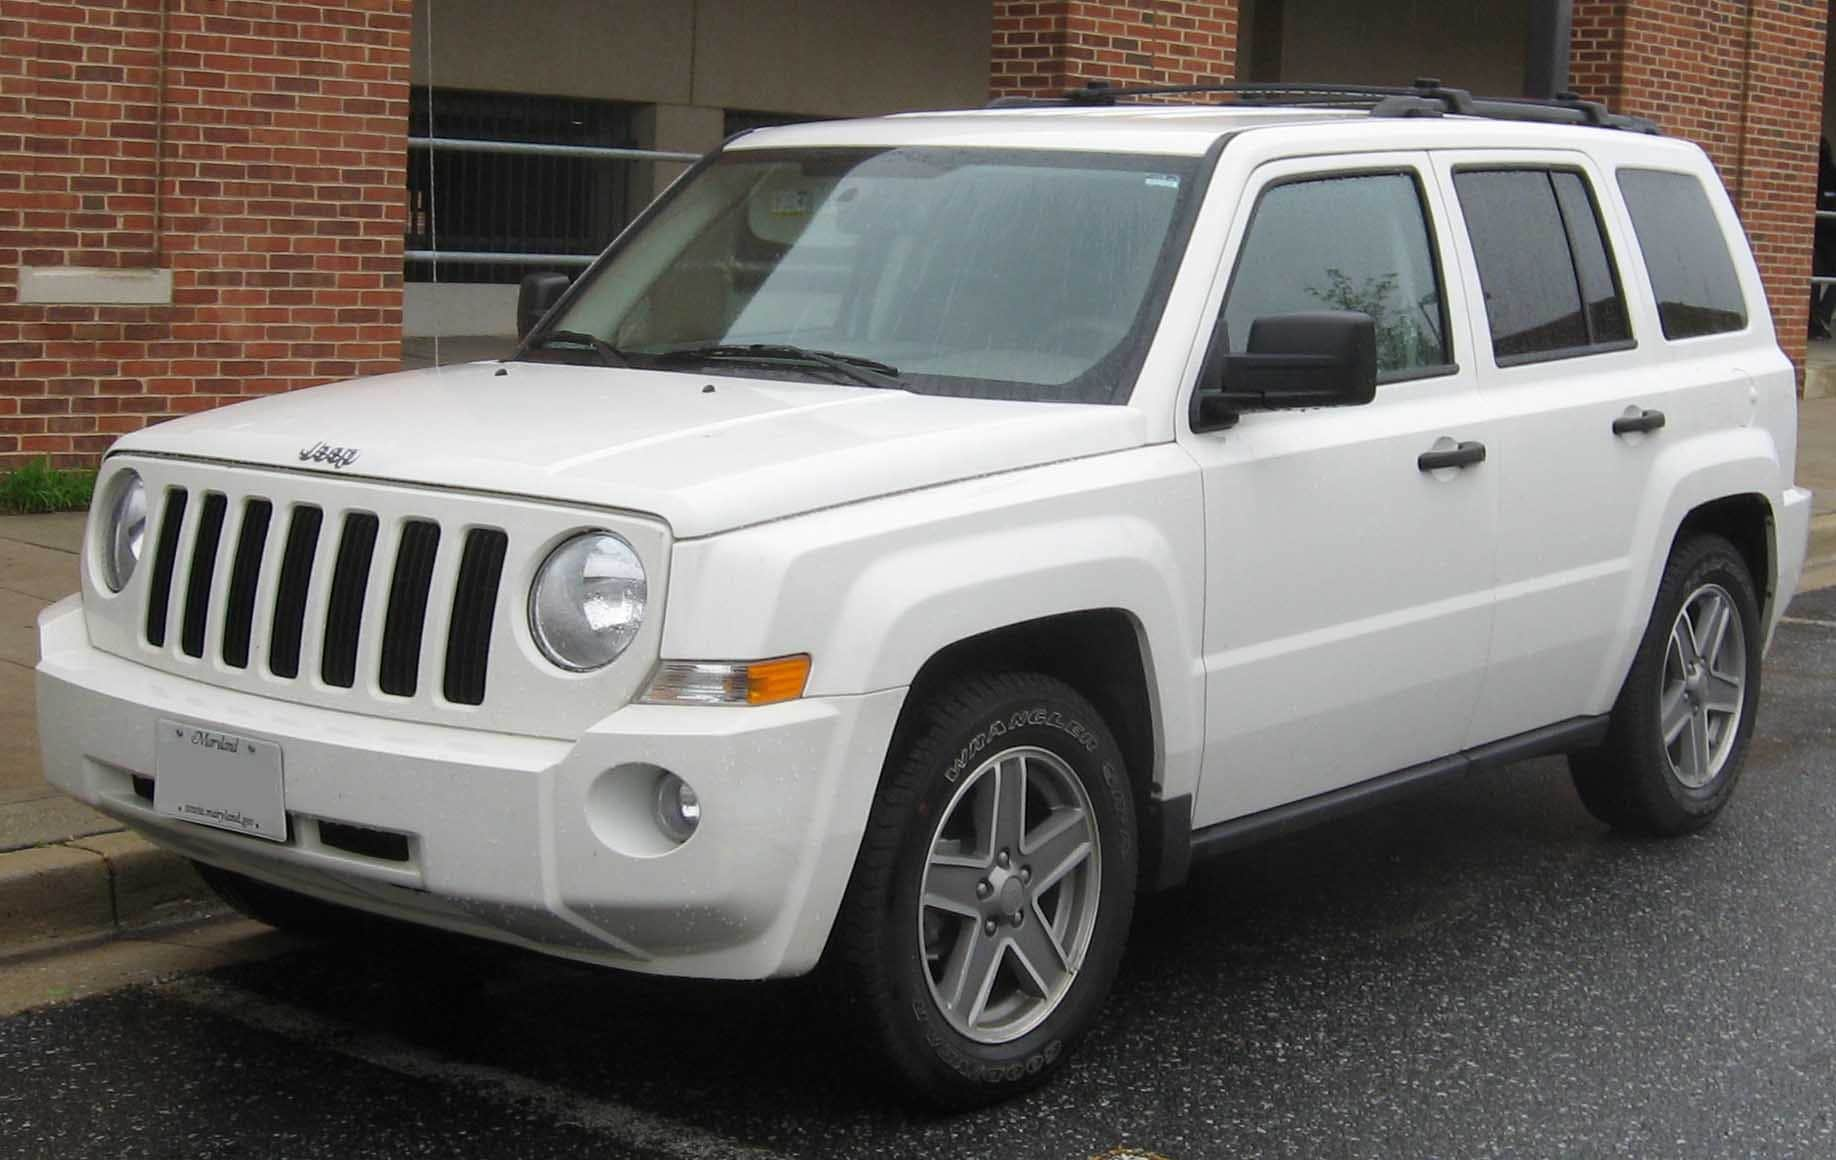 Used Jeep Patriot - Dave Sinclair Chrysler Dodge Jeep Ram Eureka MO 63025